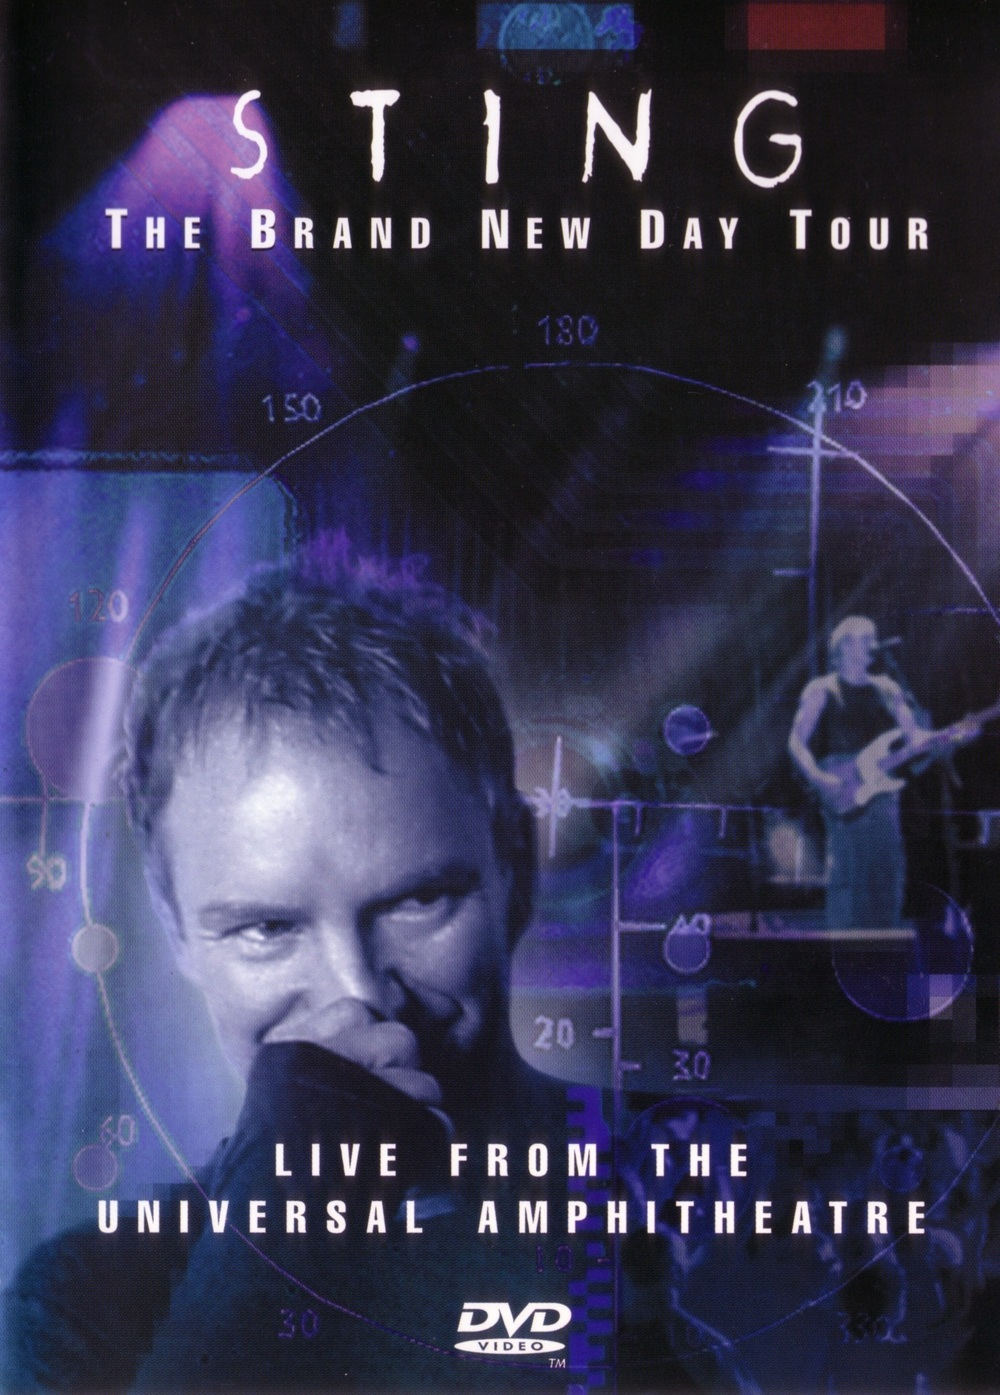 Sting - The Brand New Day Tour.jpg